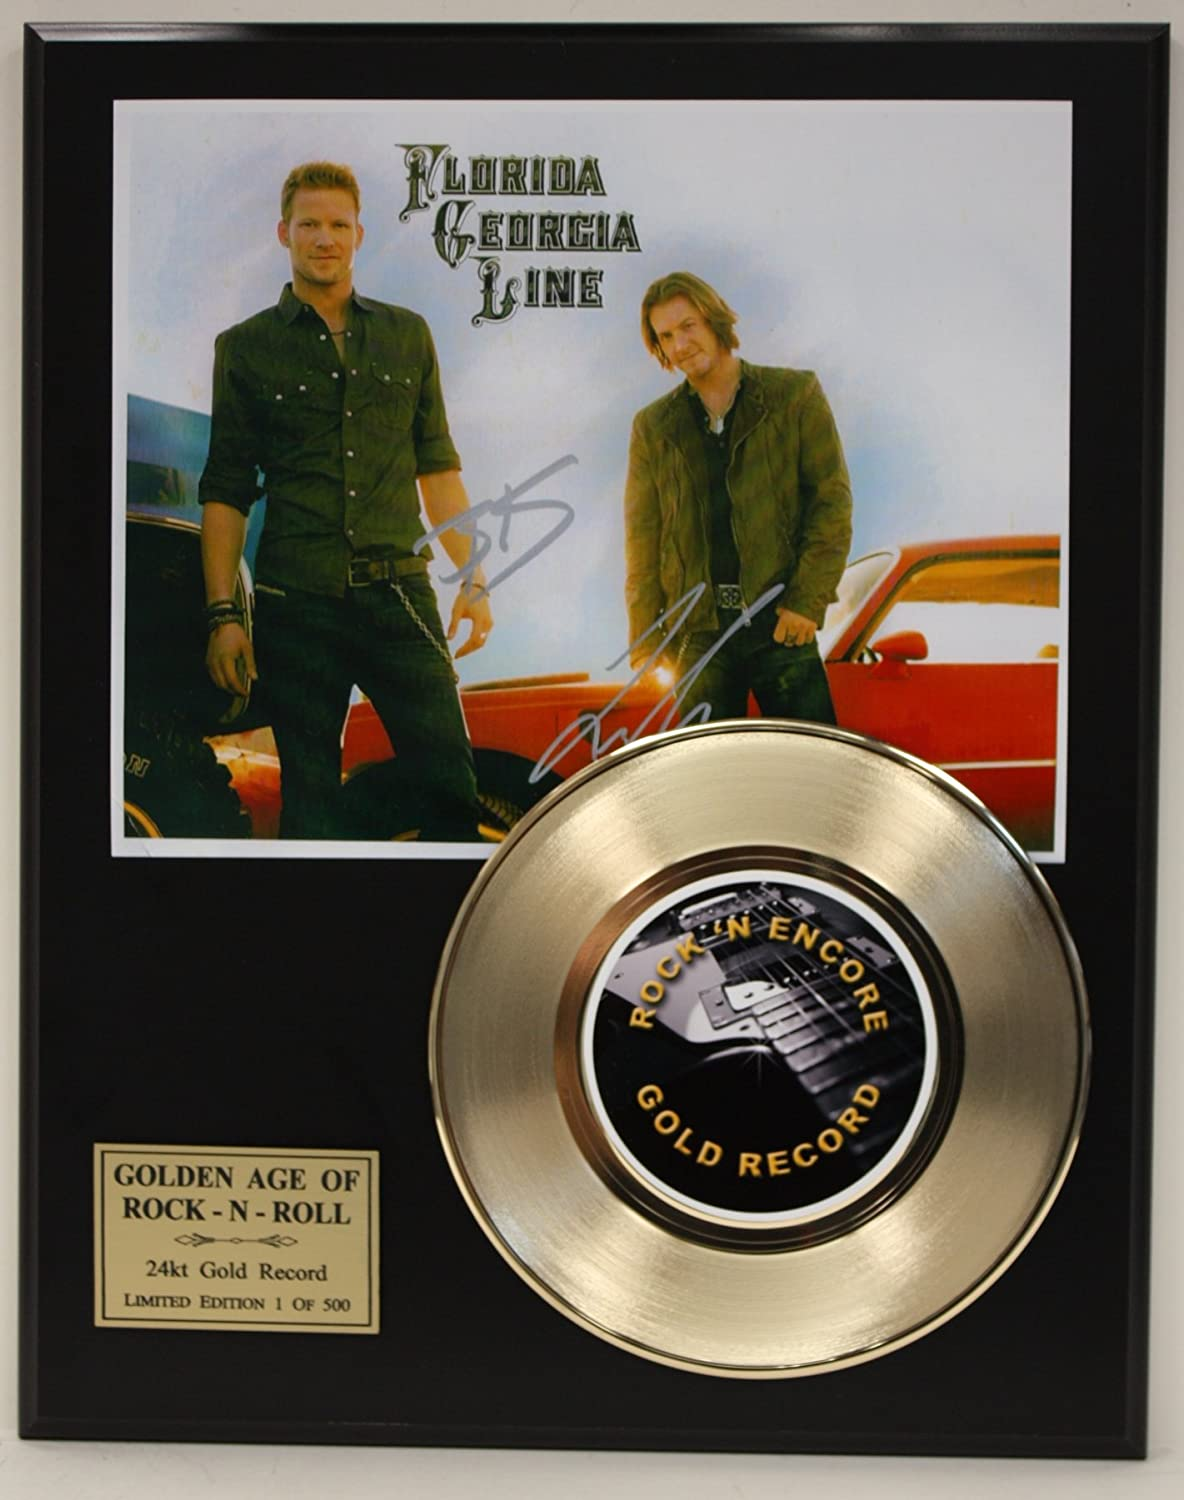 Florida Georgia Line Gold Record Signature Series LTD Edition Display Gold Record Outlet